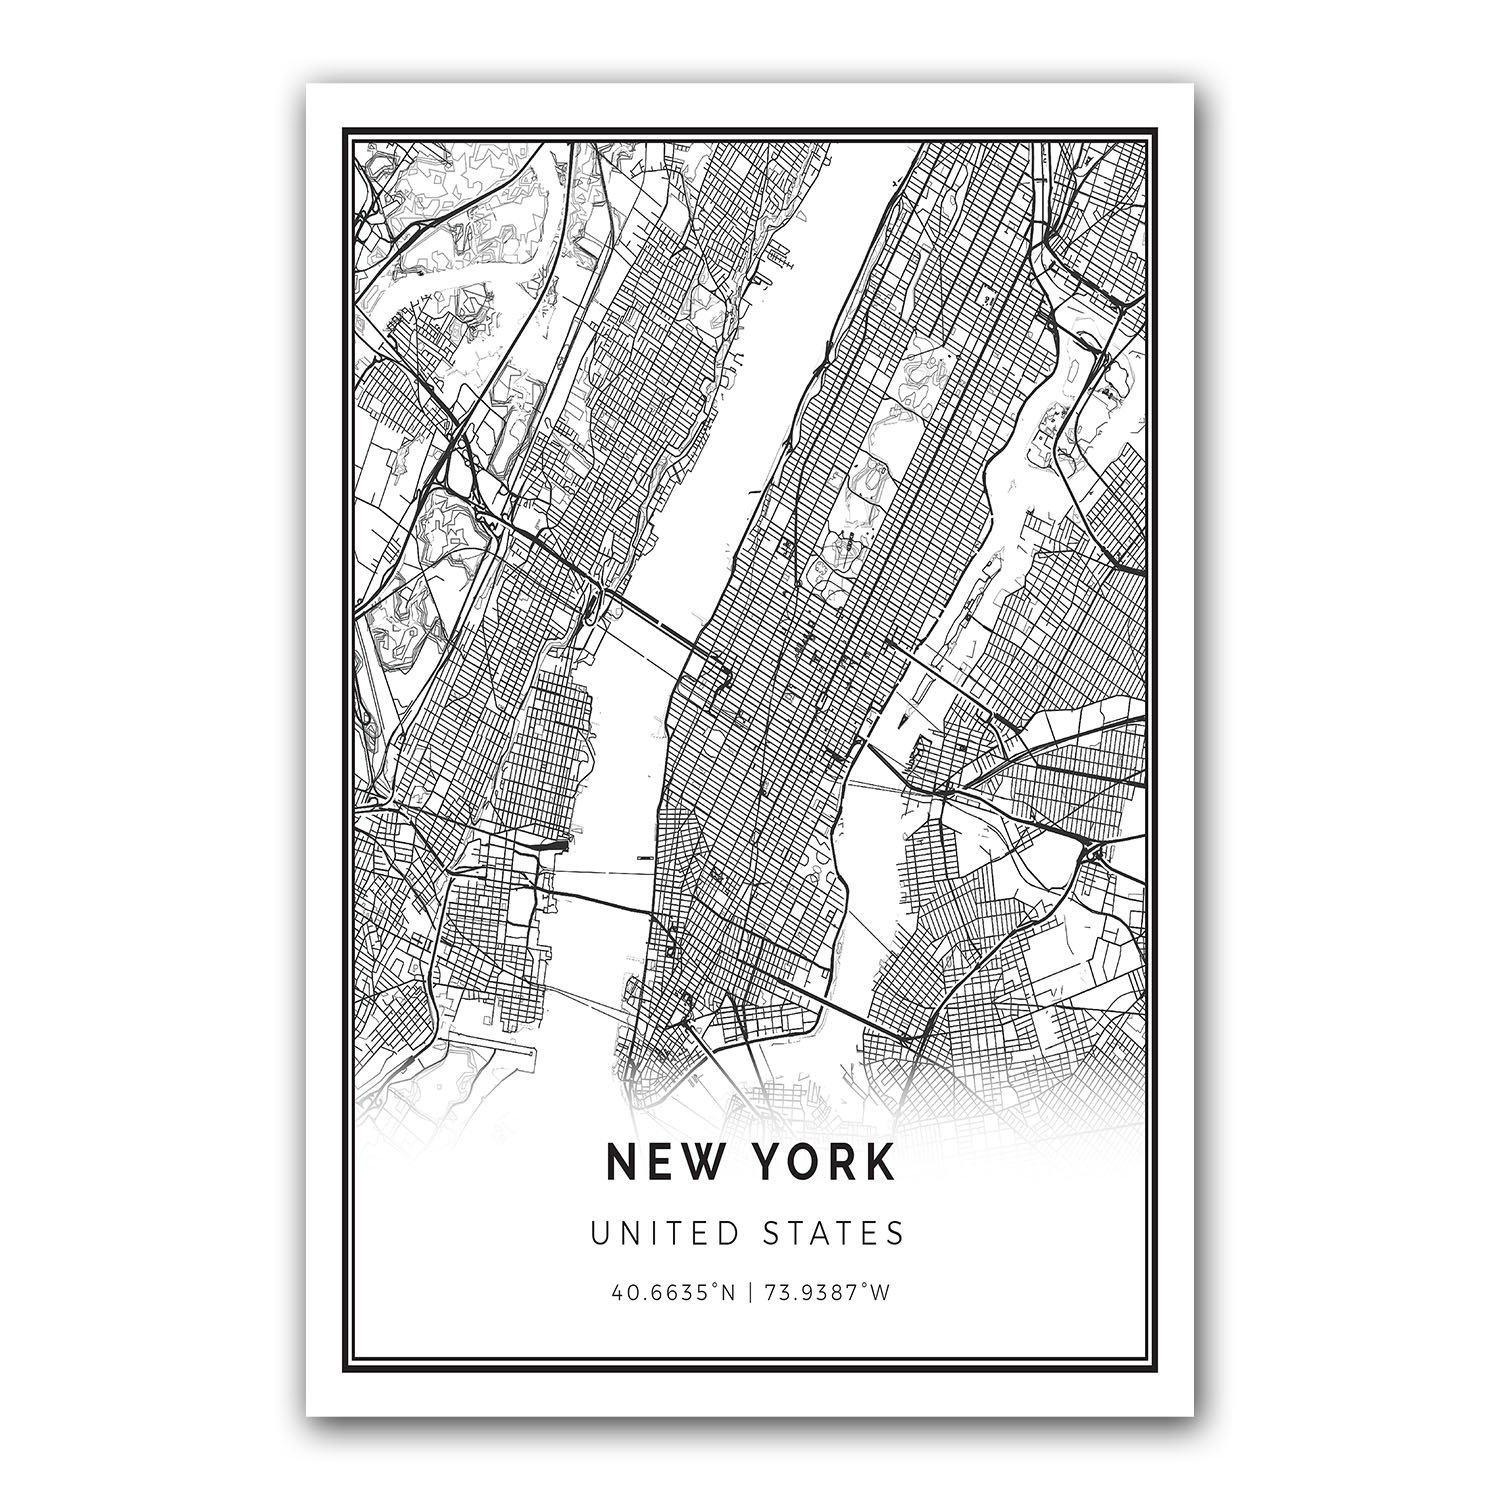 Amazon.com: New York map poster print | Modern black and ...